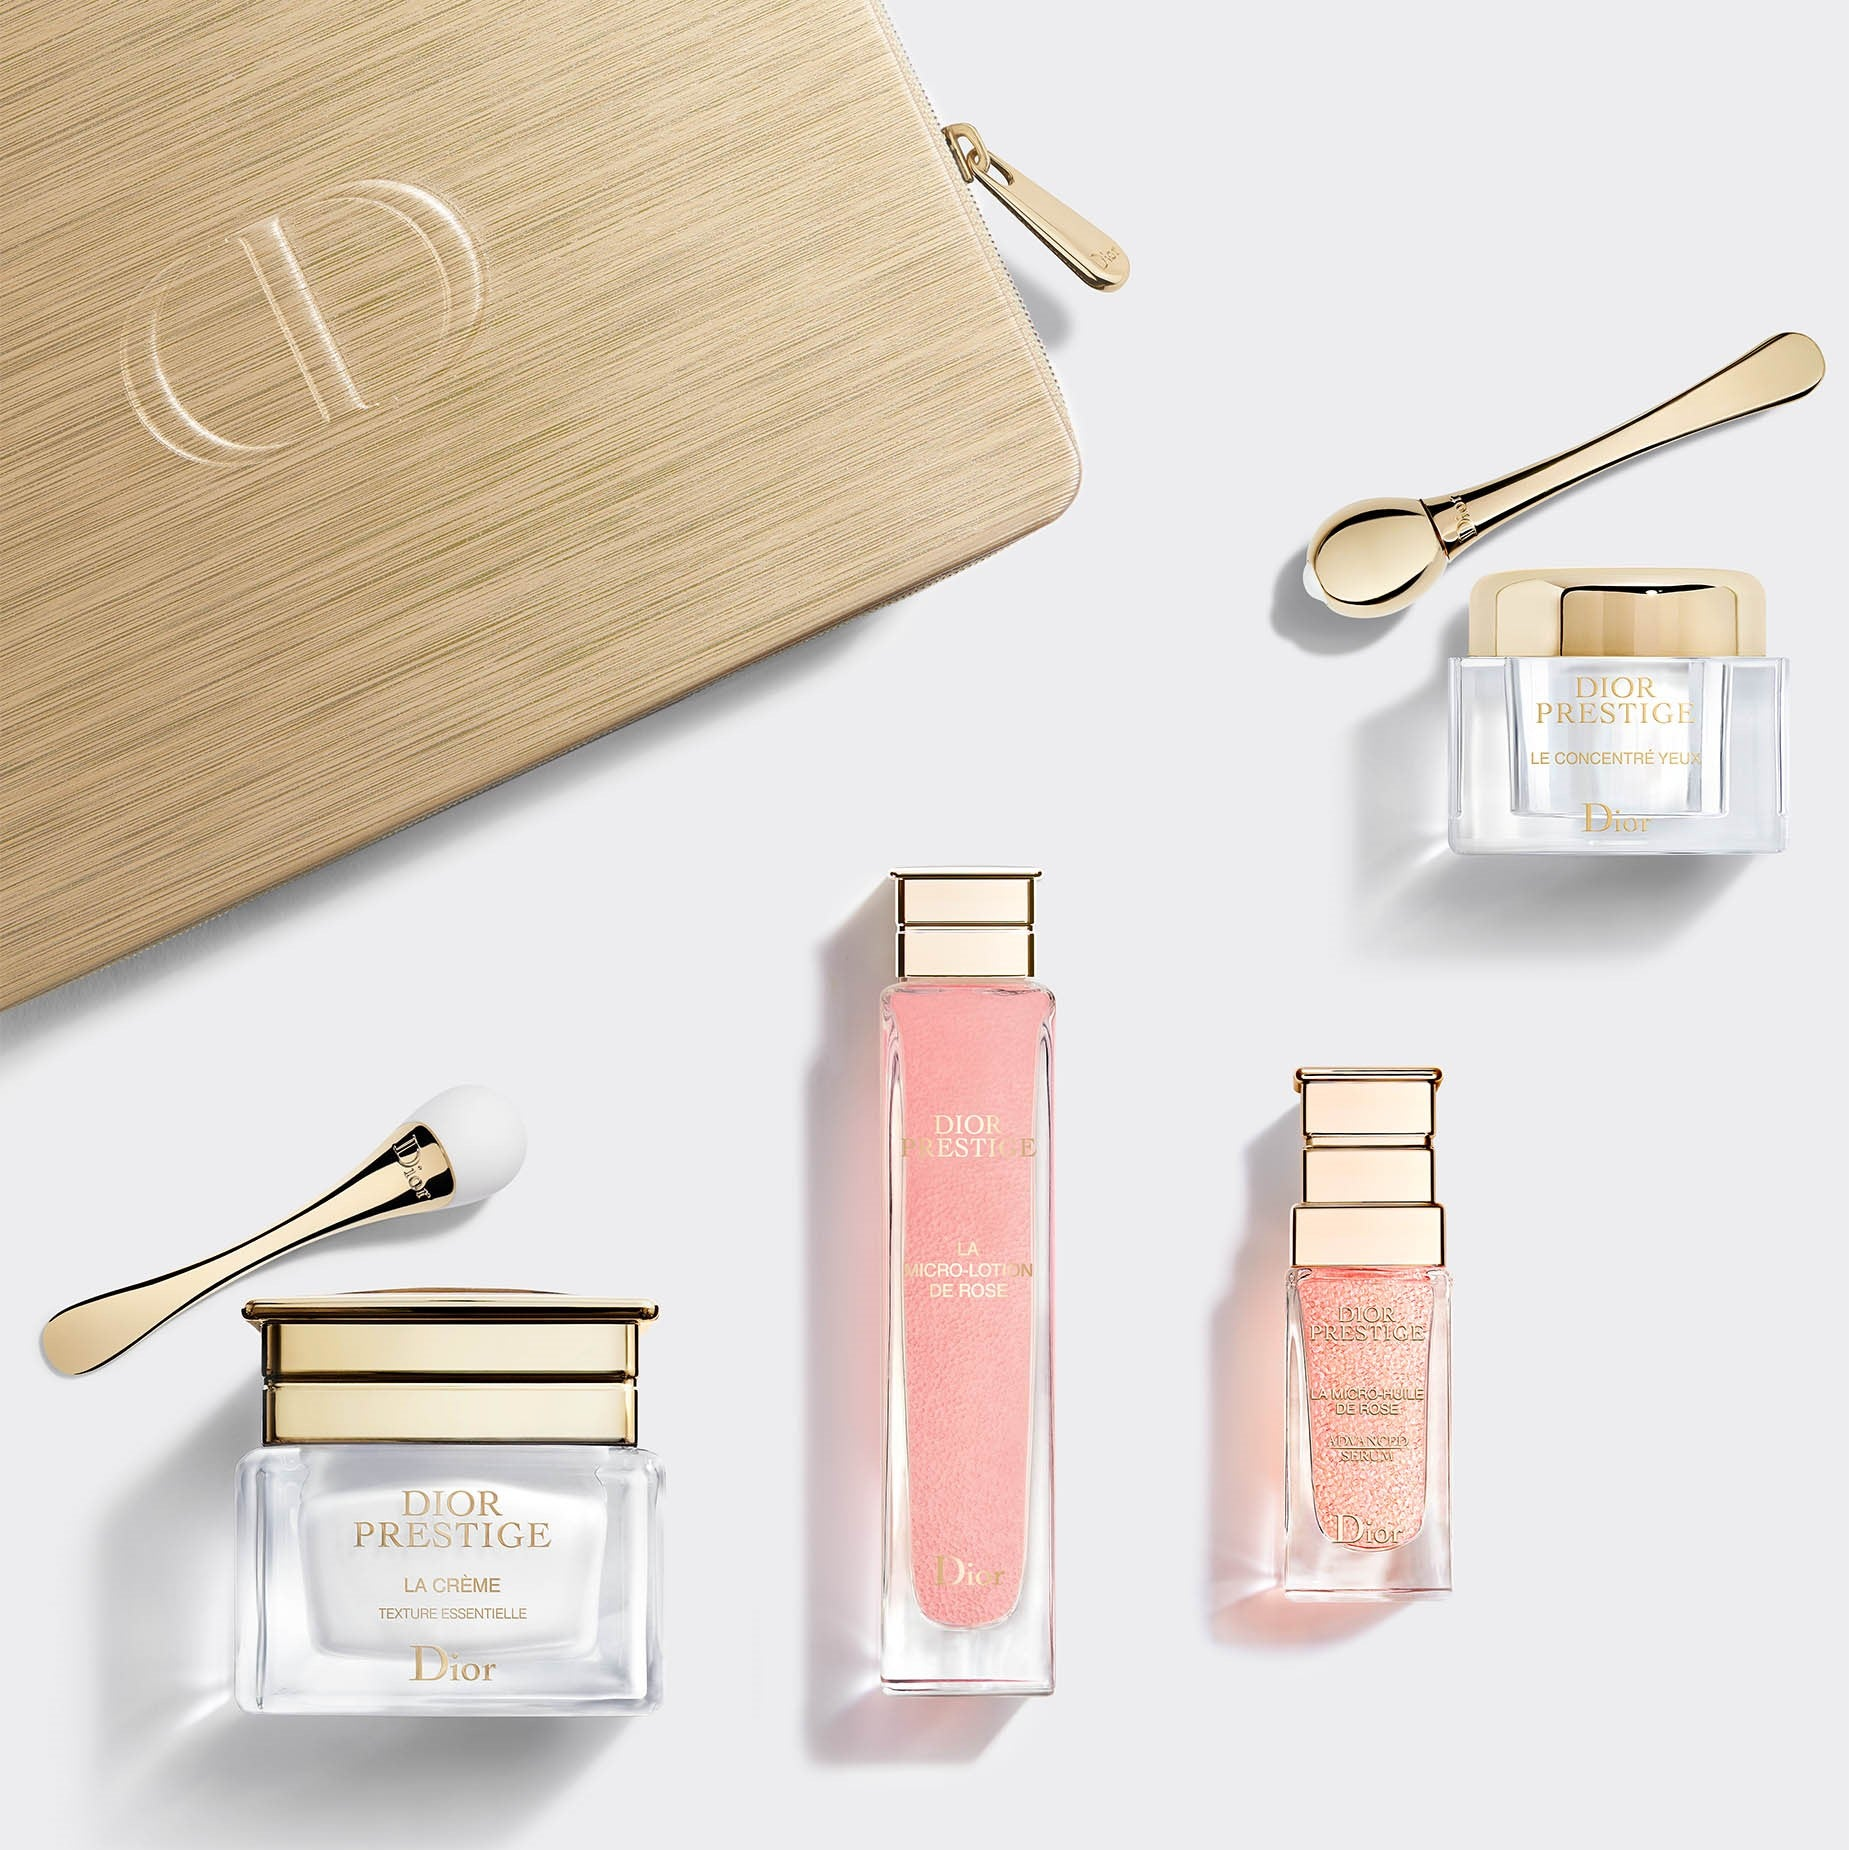 DIOR PRESTIGE ~ Exclusive skincare set: regenerating and perfecting discovery ritual